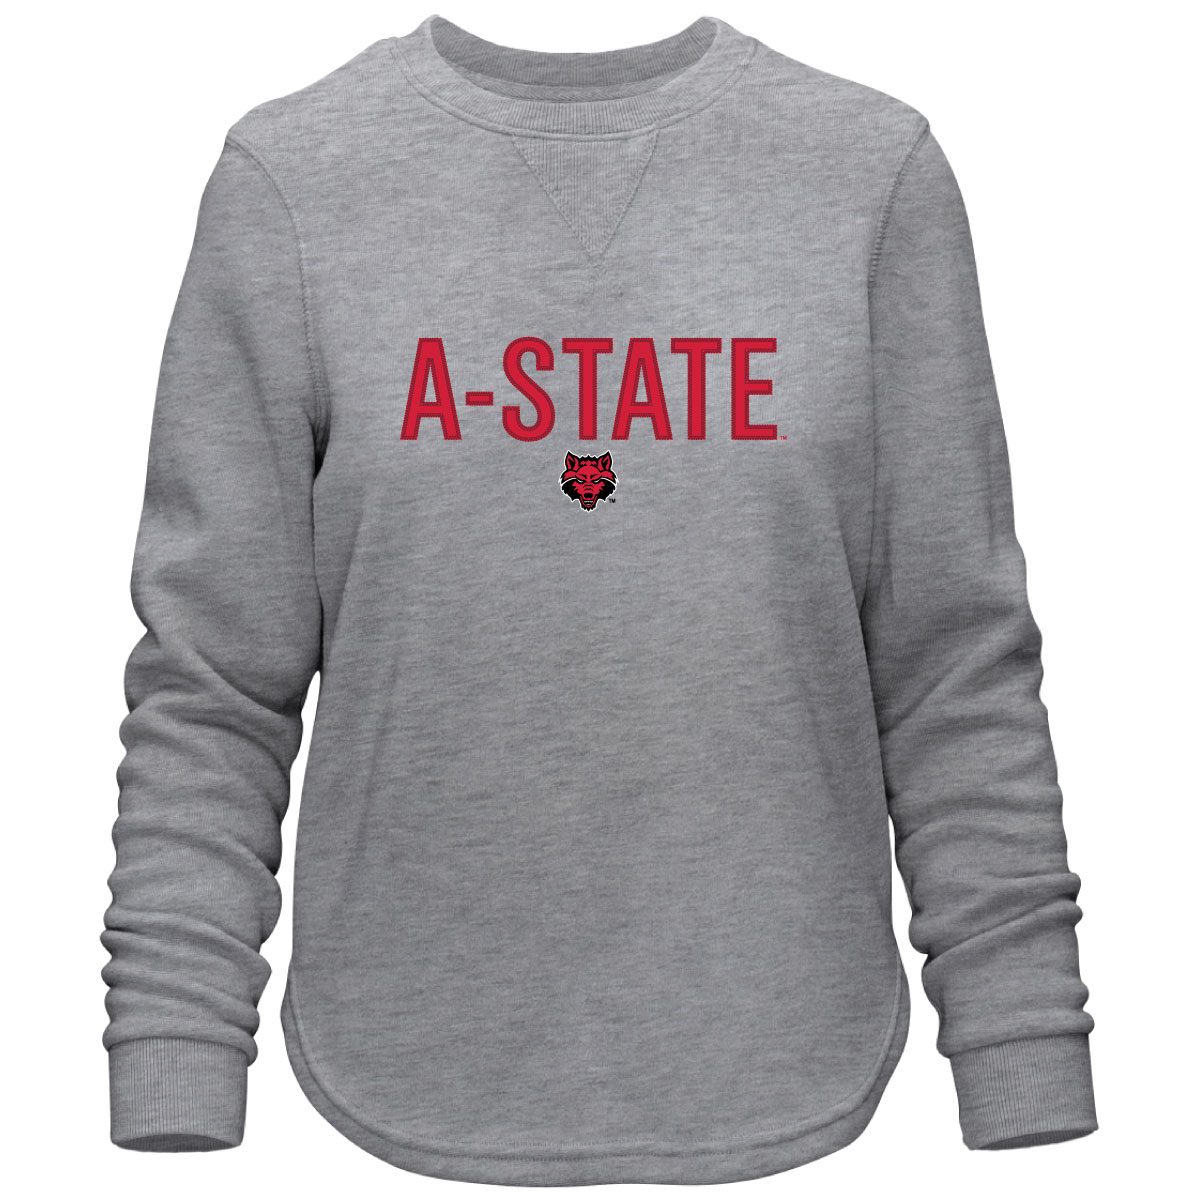 A-State Comfy Crew